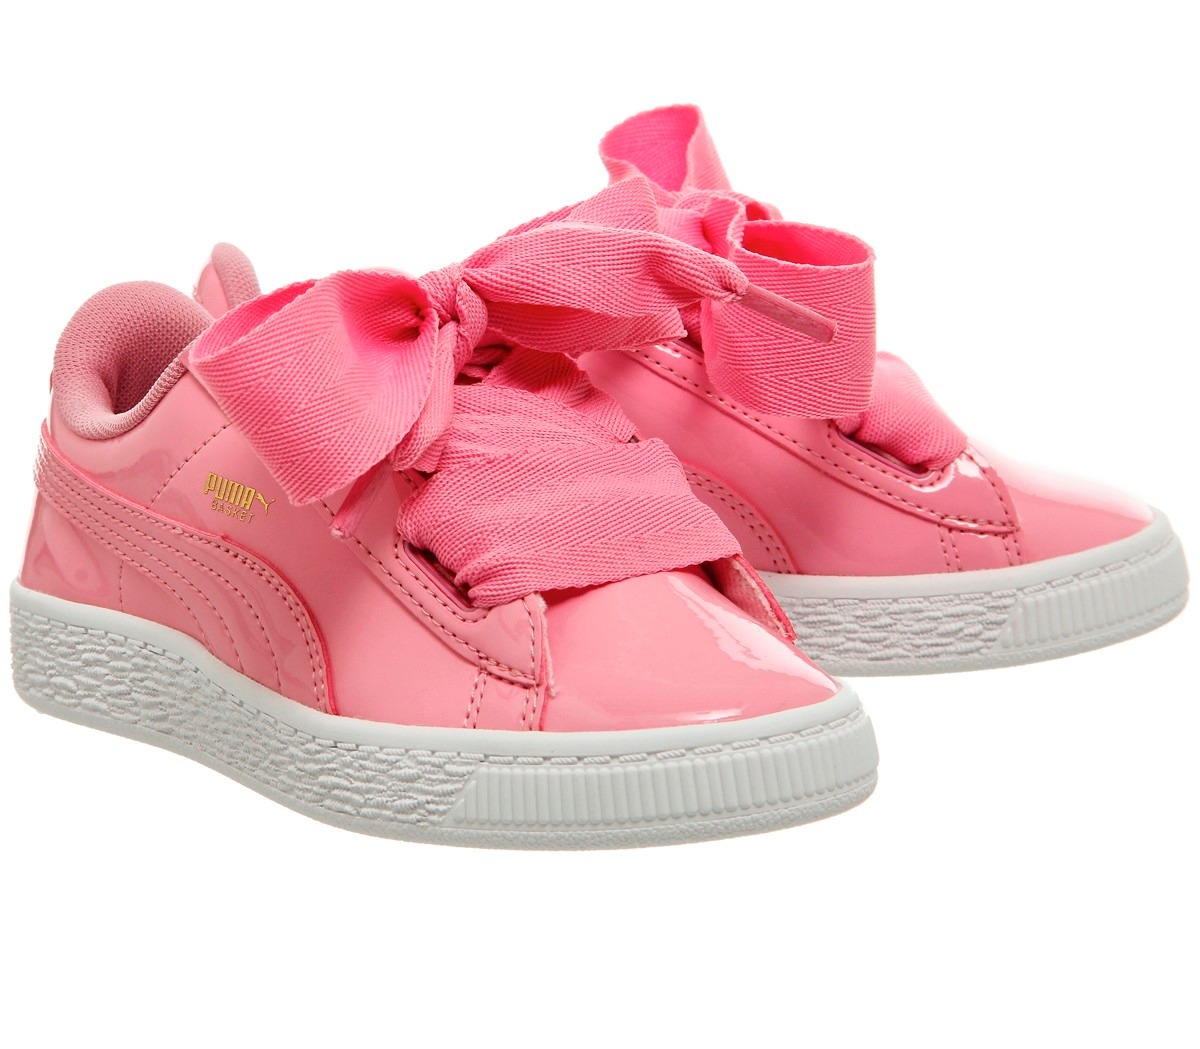 puma basket heart pink rosa env o gratis tipo fenty. Black Bedroom Furniture Sets. Home Design Ideas